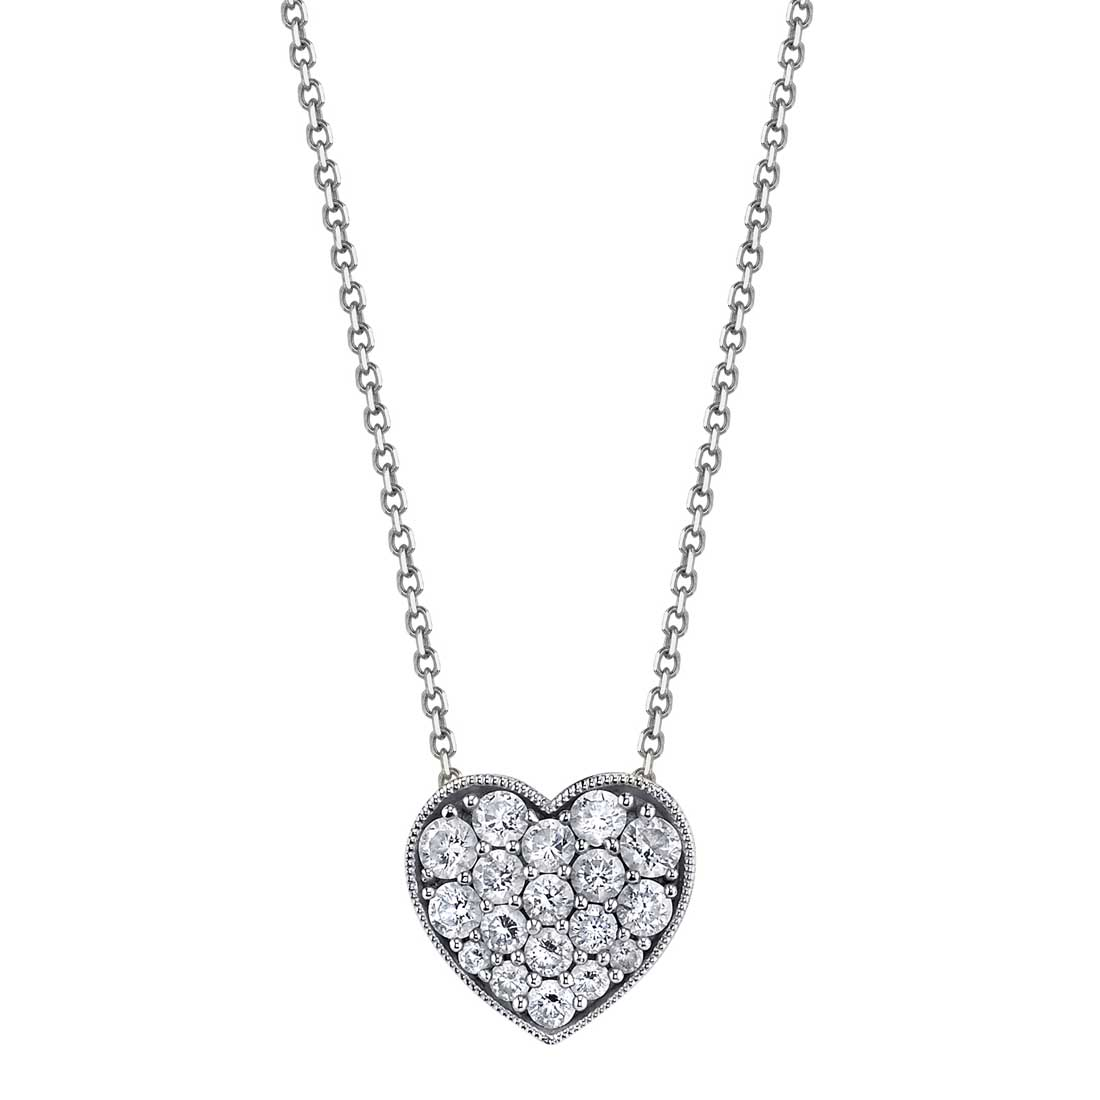 Heart-Shaped Diamond Necklace in White Gold